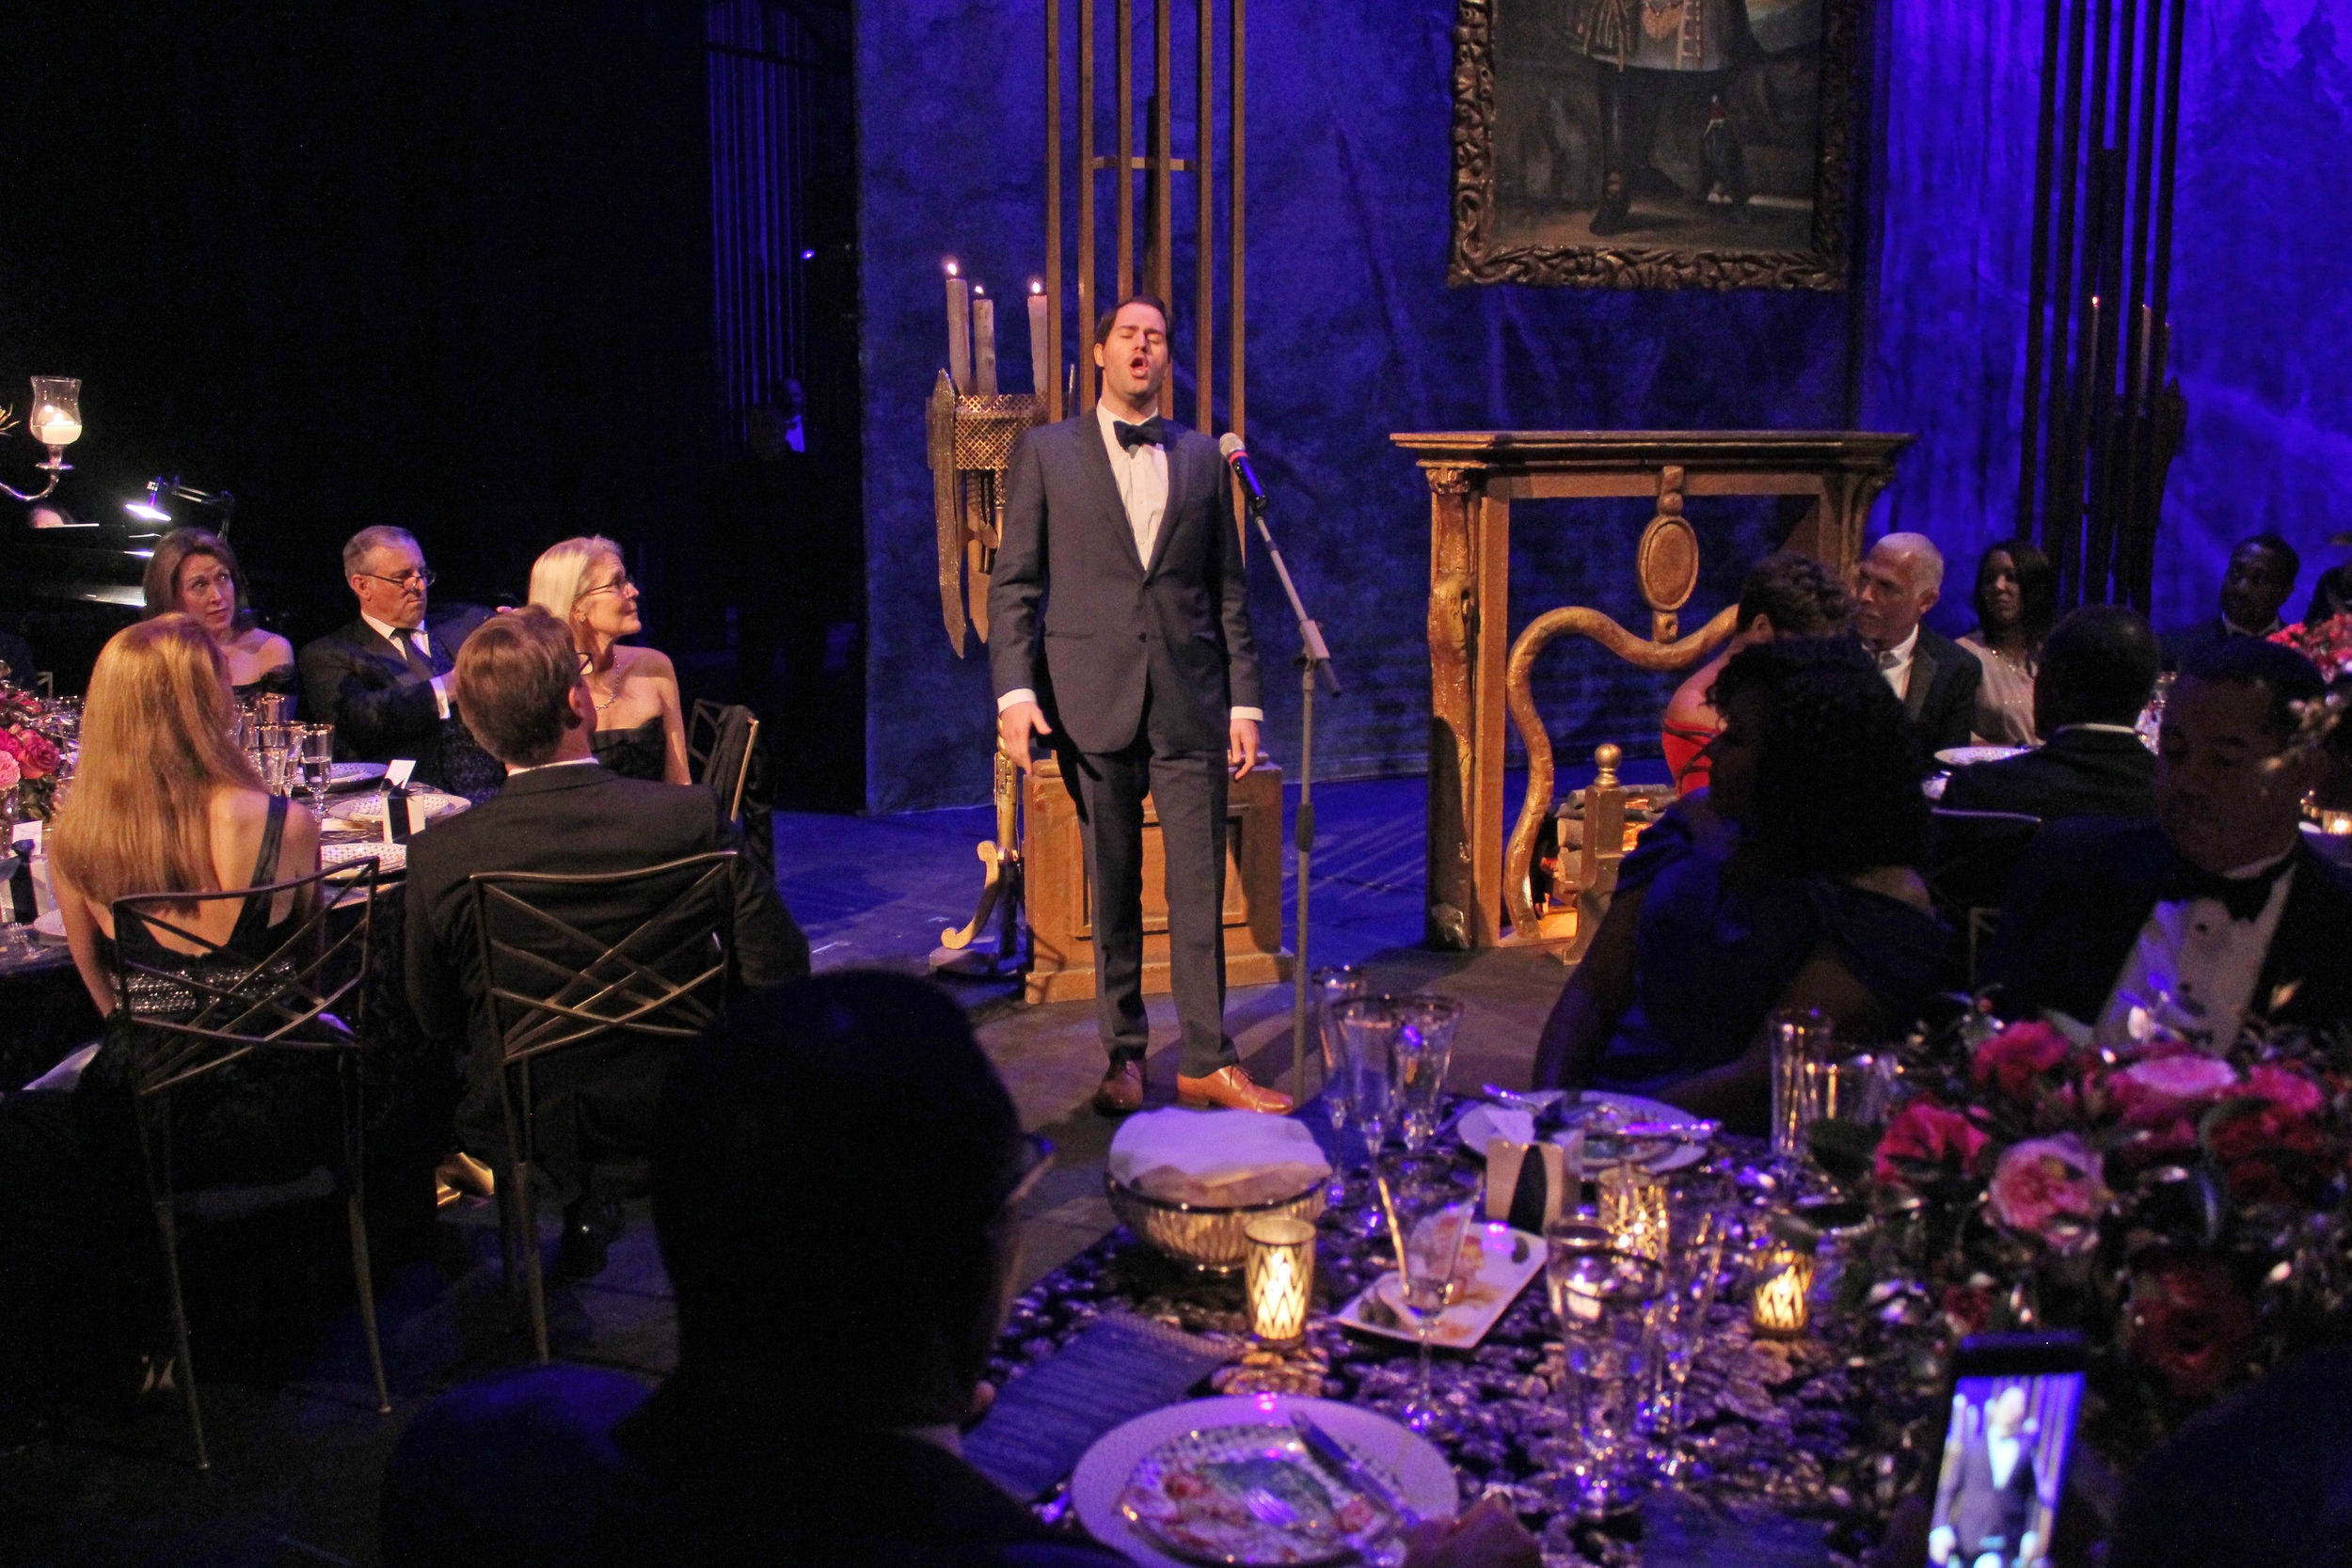 Star tenor David Walton performs during dinner.